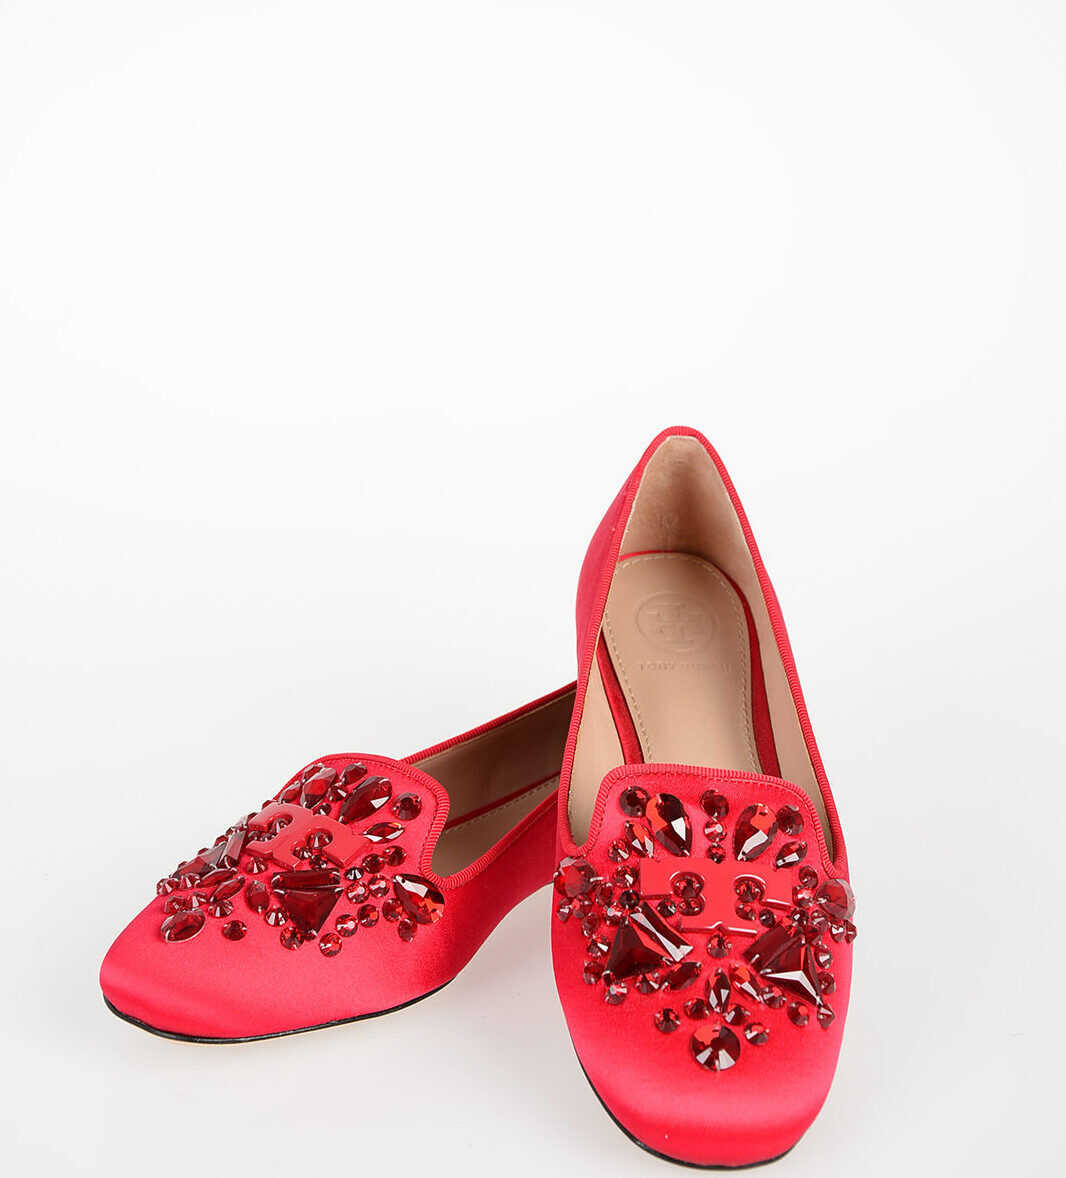 Tory Burch Embroidered Jewel DELPHINE Ballet RED